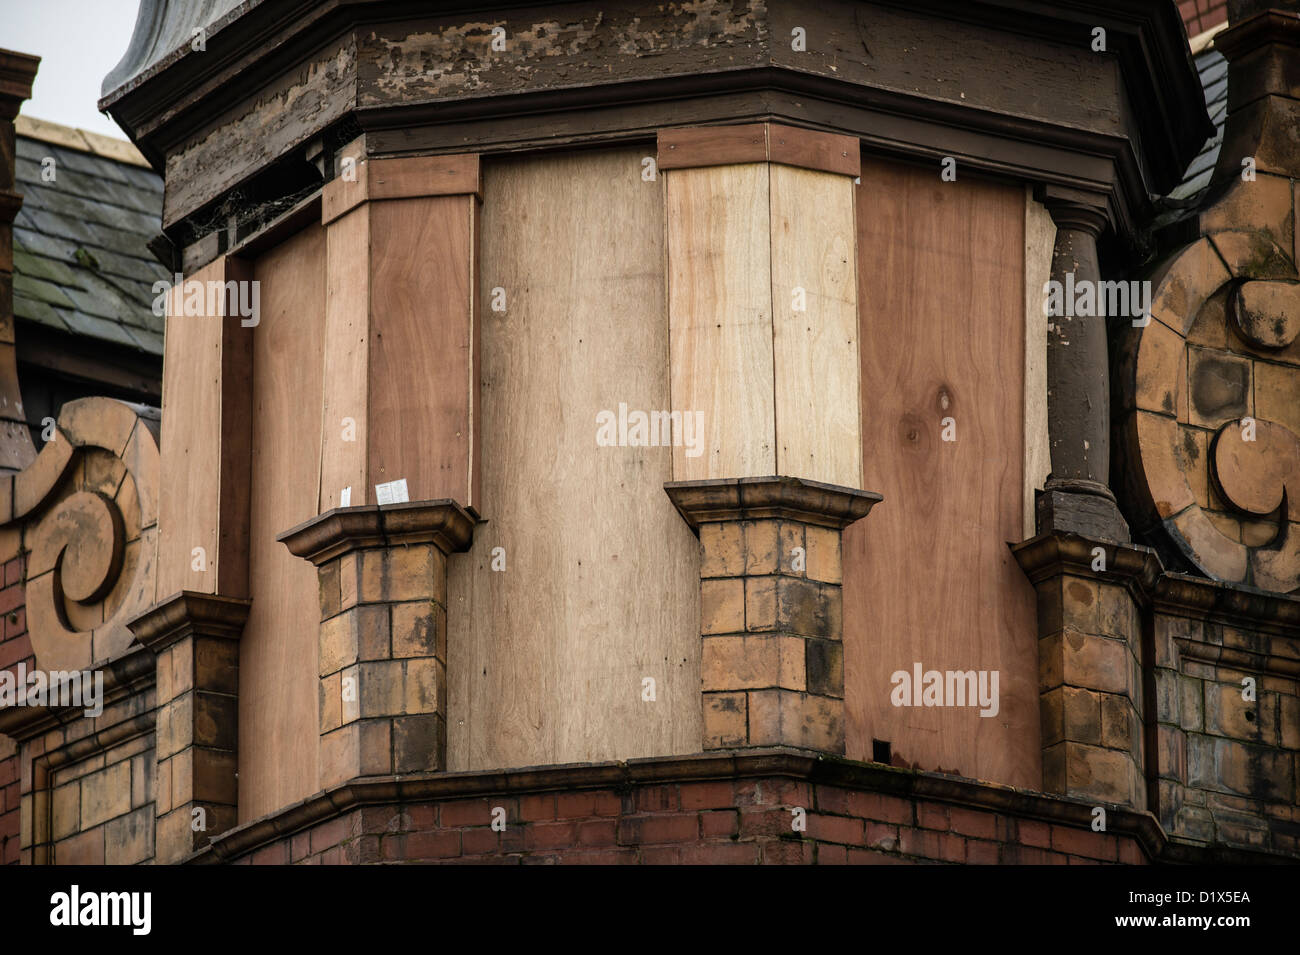 The boarded up corner turret windows of a Victorian era building in need of repair and renovation, UK - Stock Image